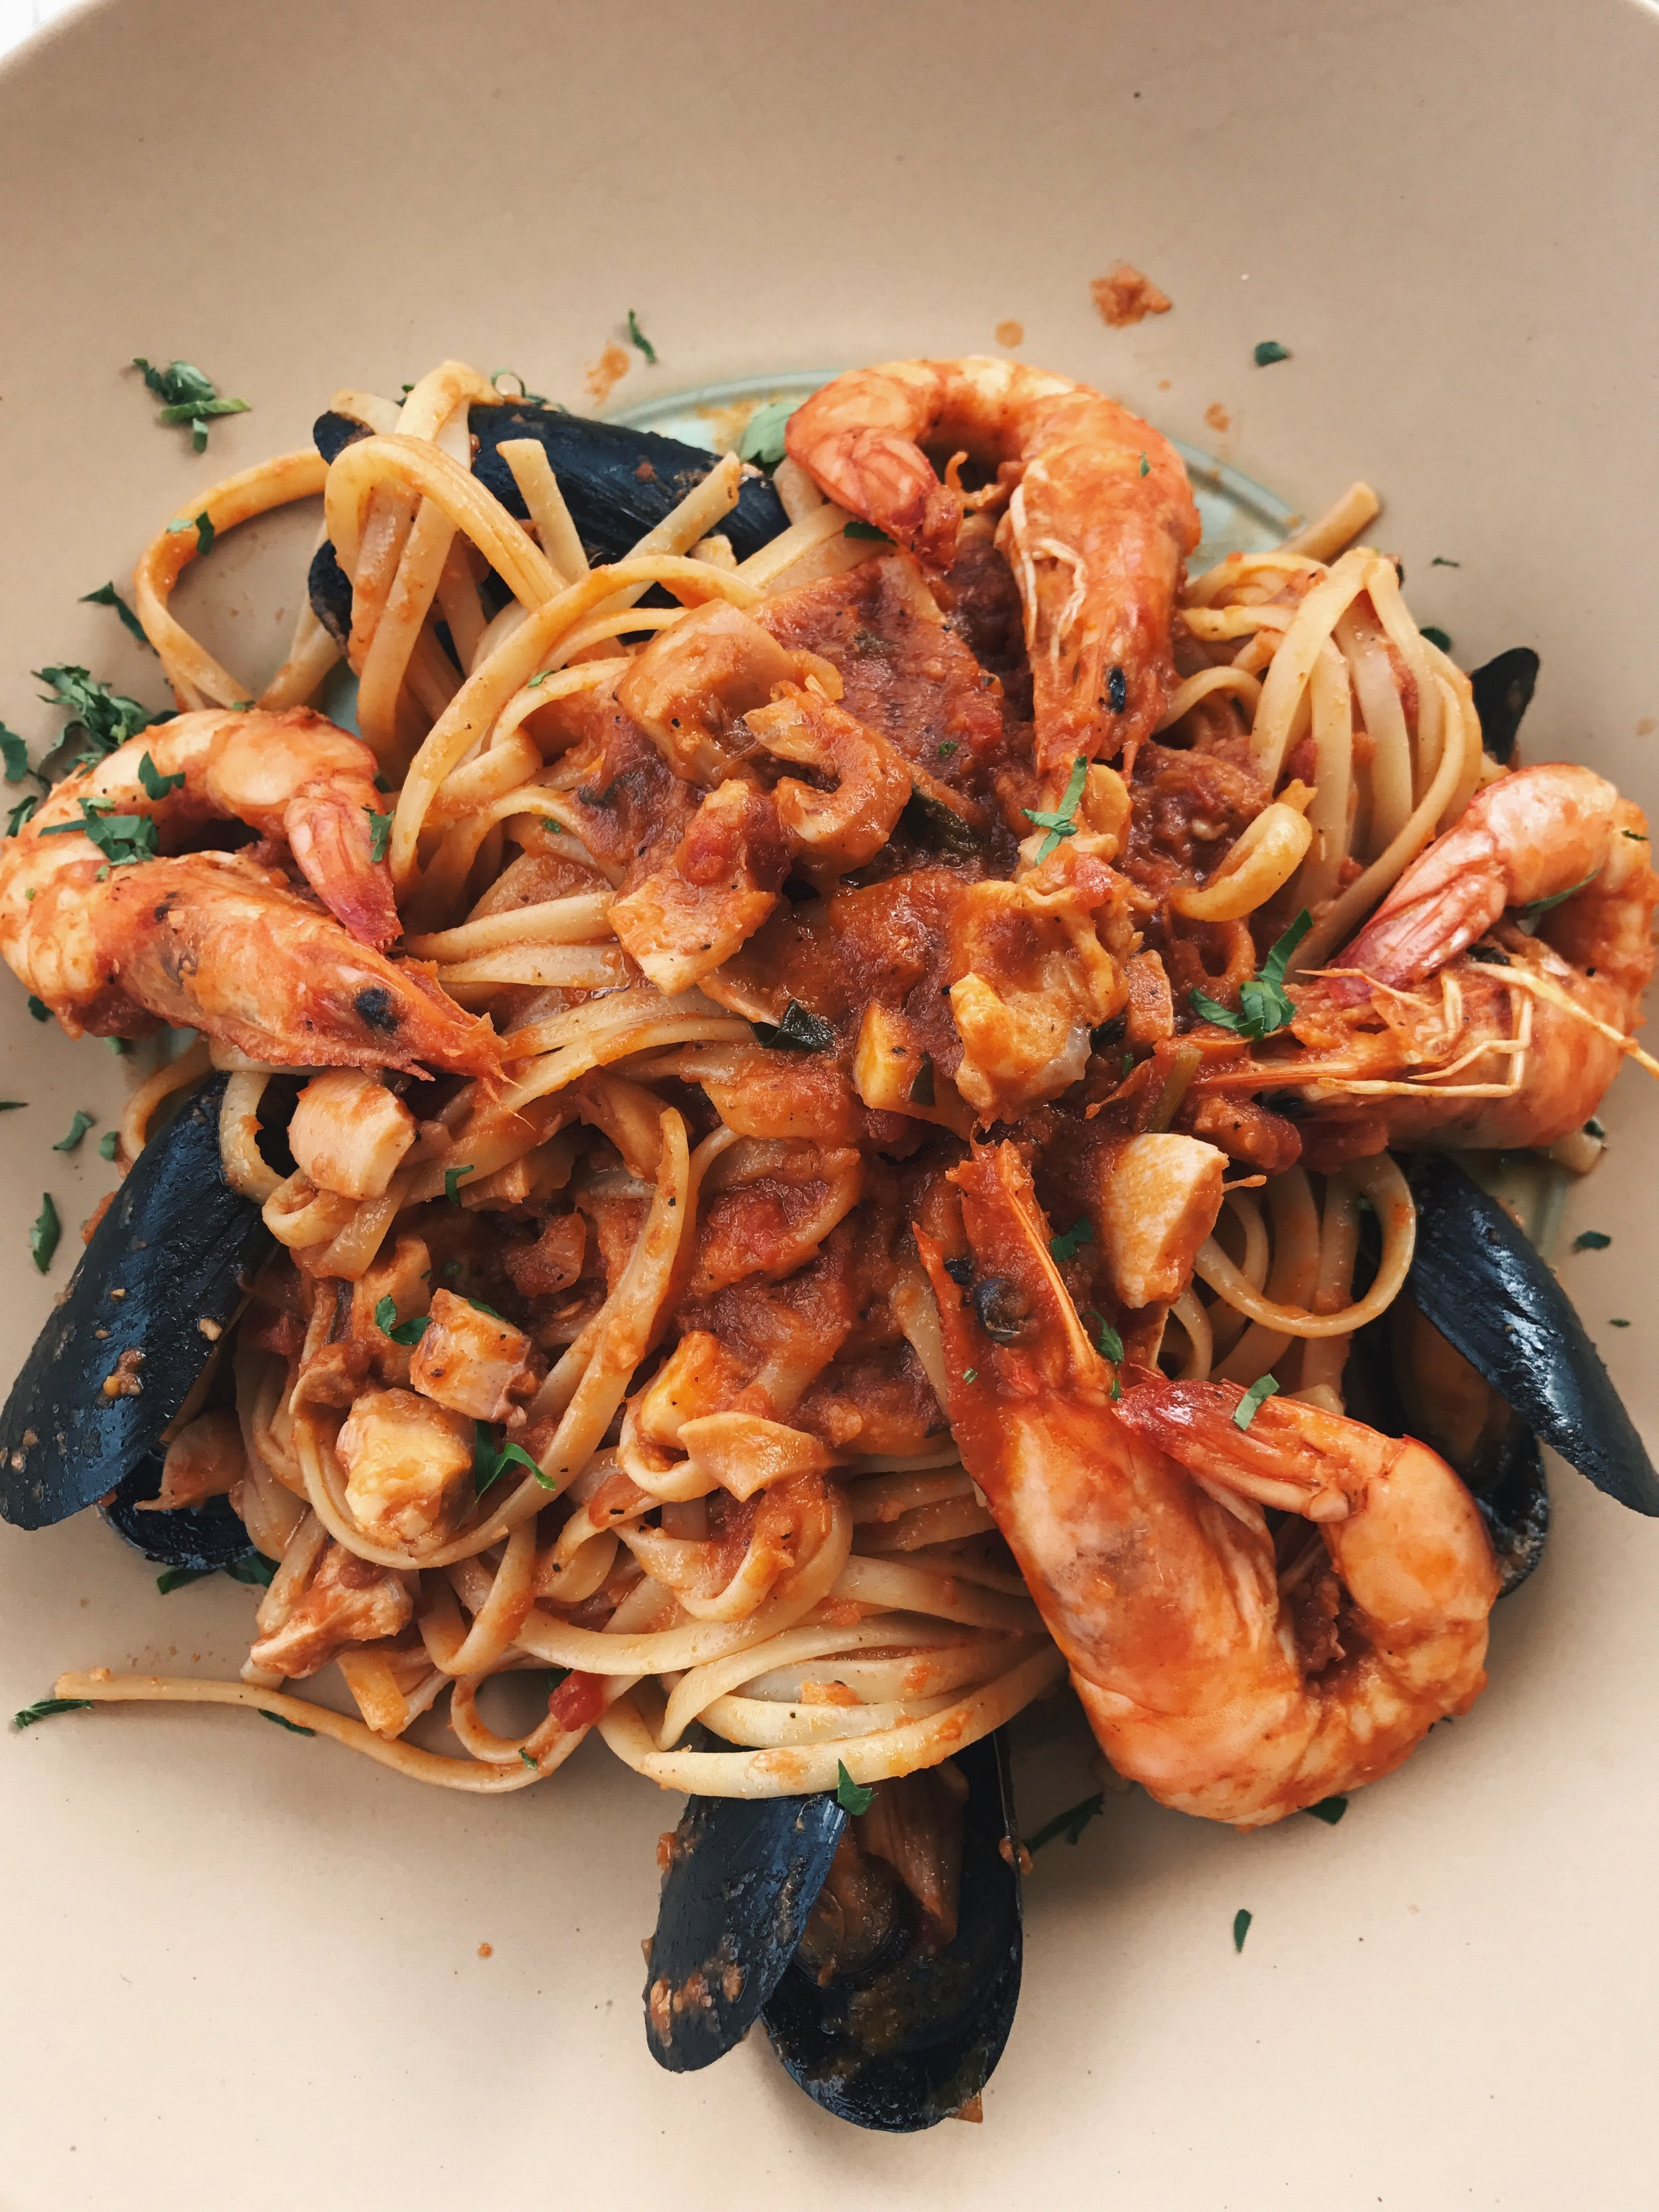 seafood linguine with shrimps, mussels, and squid